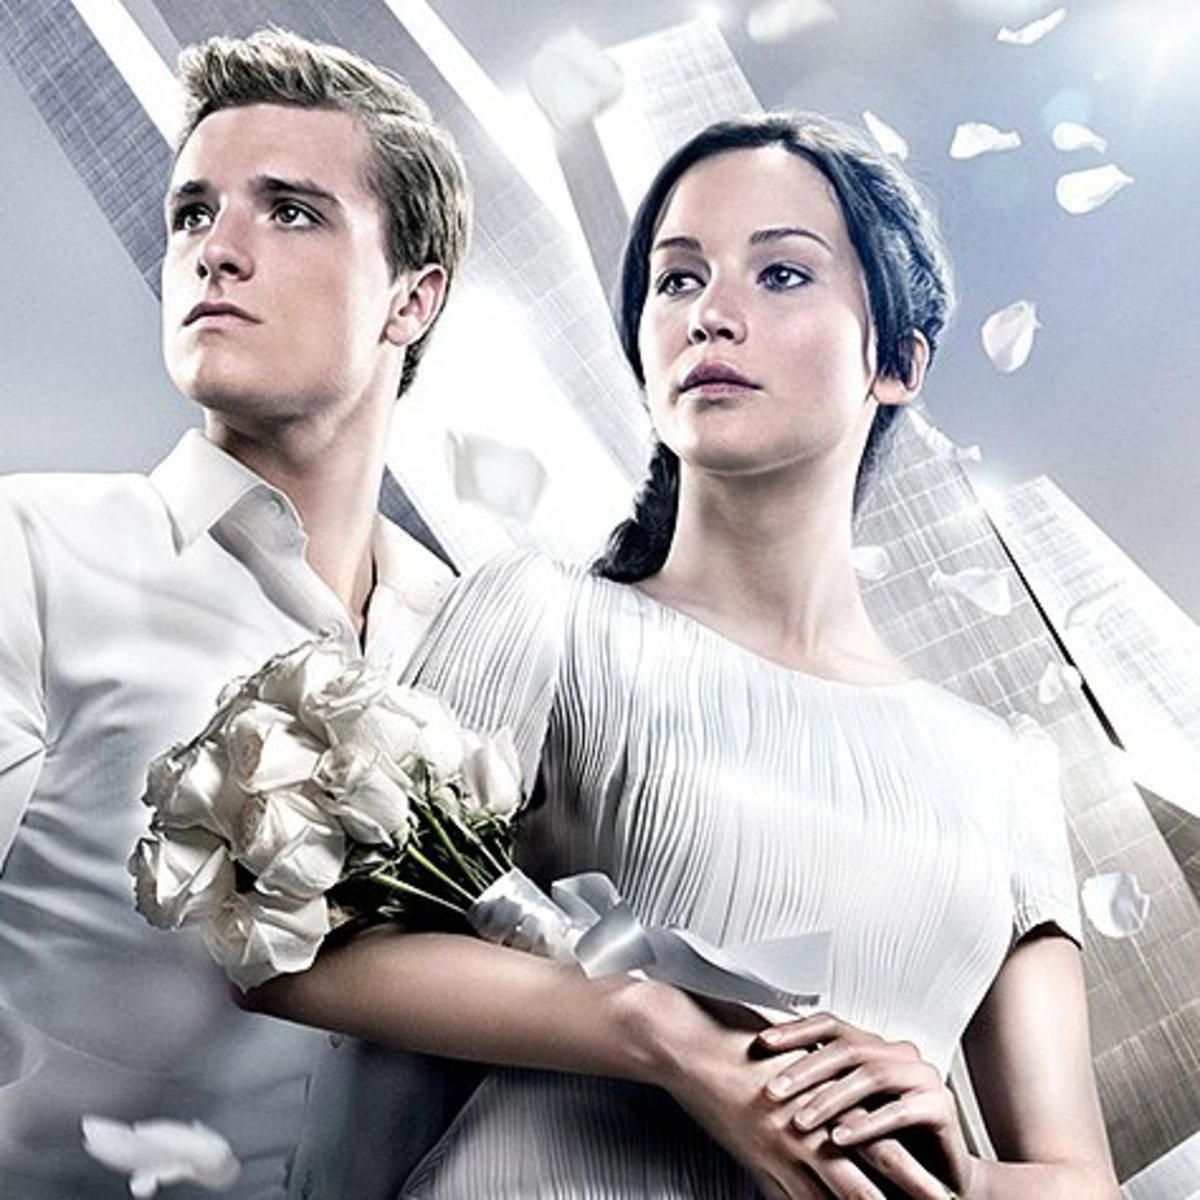 Image from: www.popsugar.com/entertainment/Catching-Fire-Victory-Poster-Katniss-Peeta-28264113